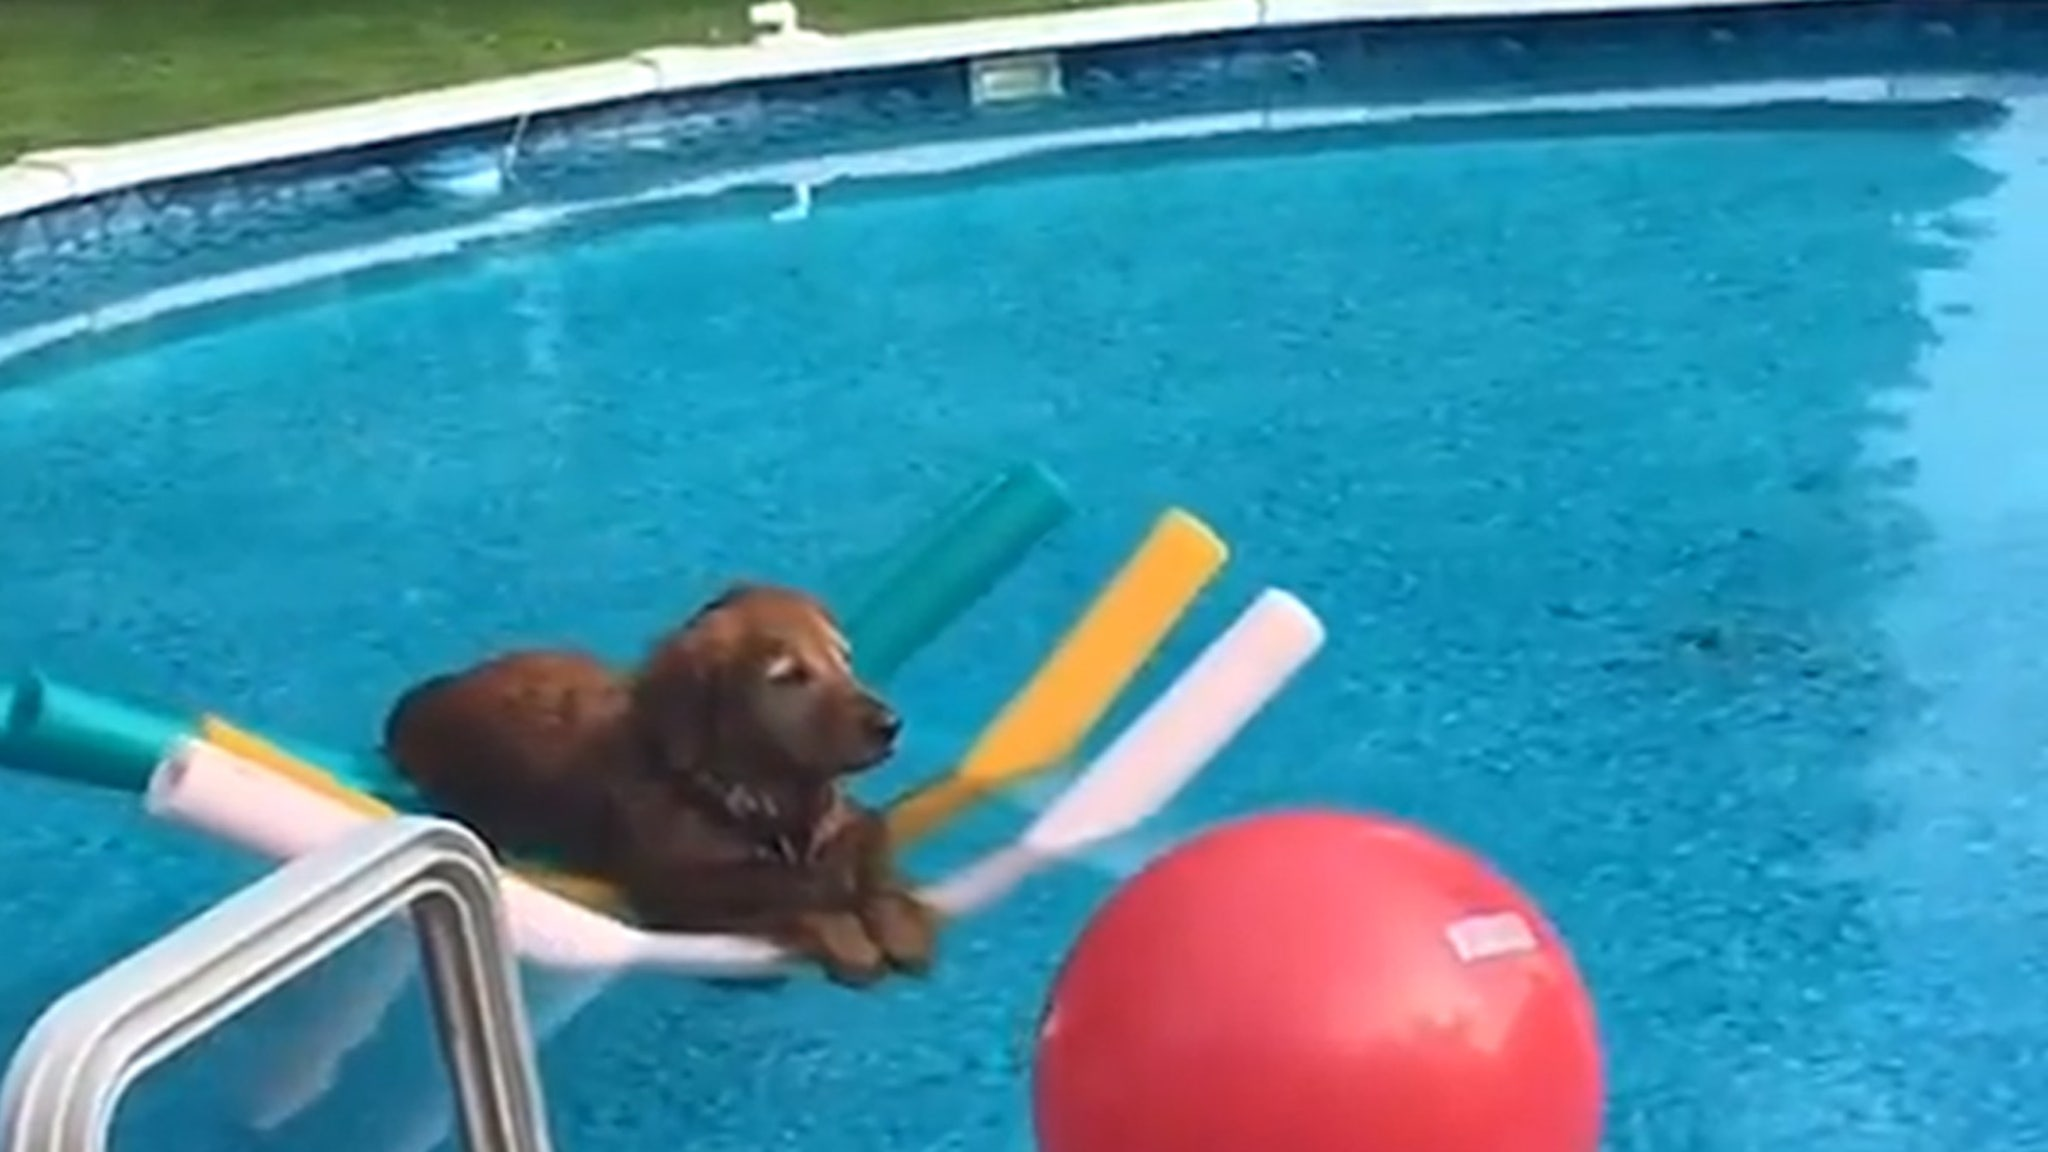 America's Best Friend Good Dog Quietly Celebrates the 4th ... No Paddle, Just Noodles